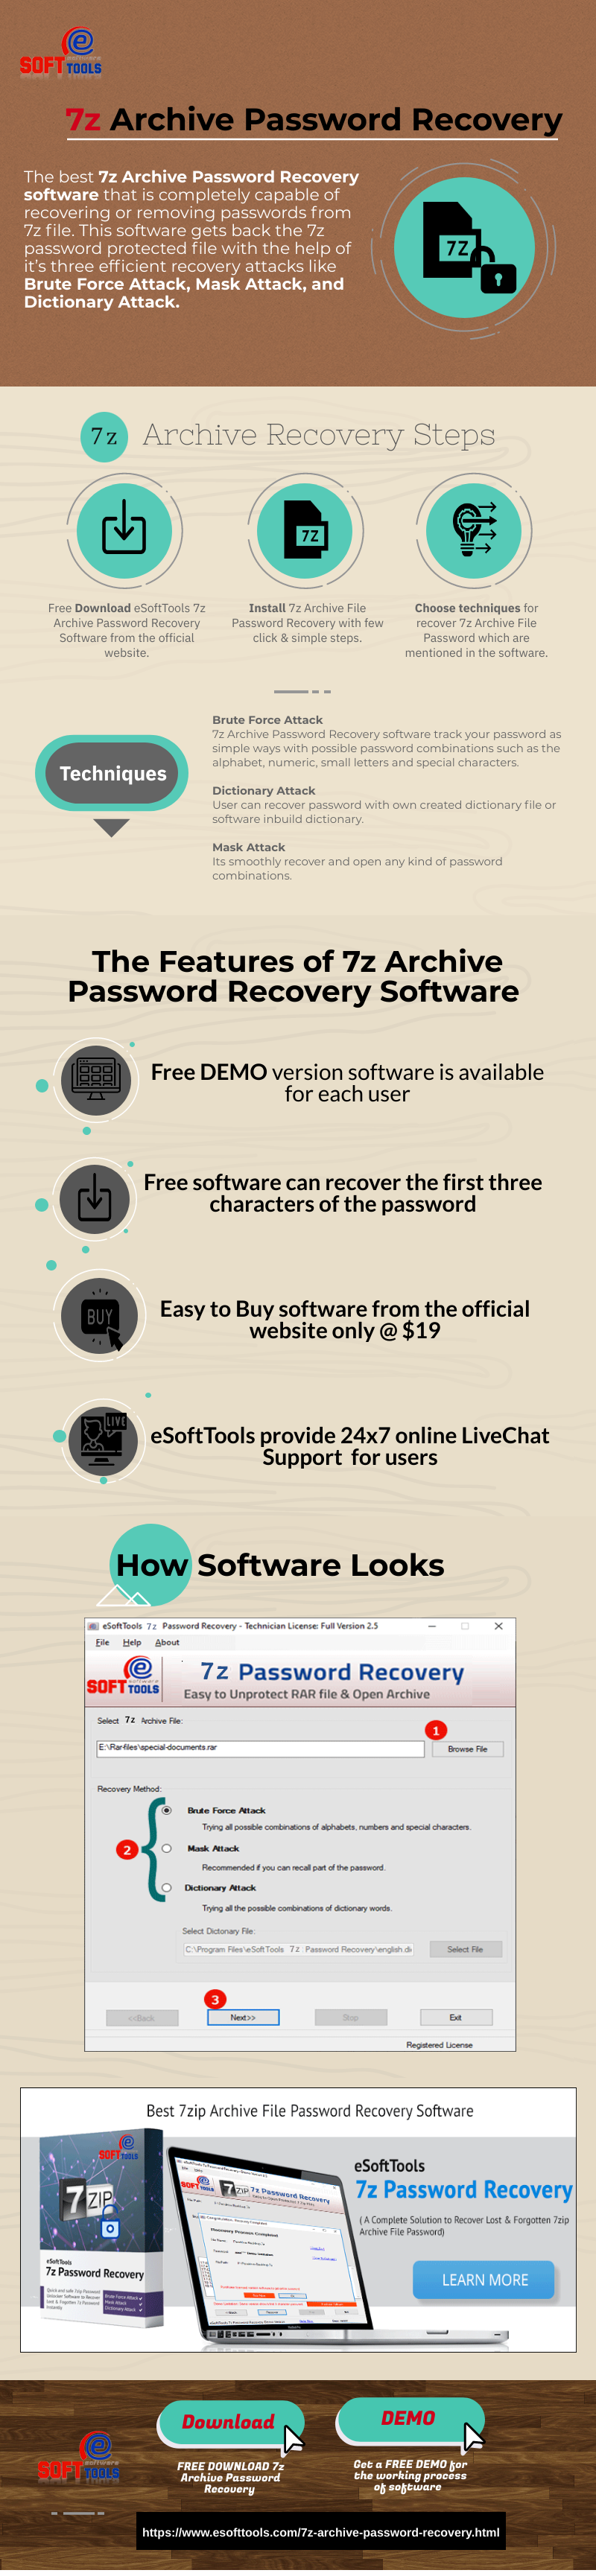 7z-archivepasswordrecovery.png